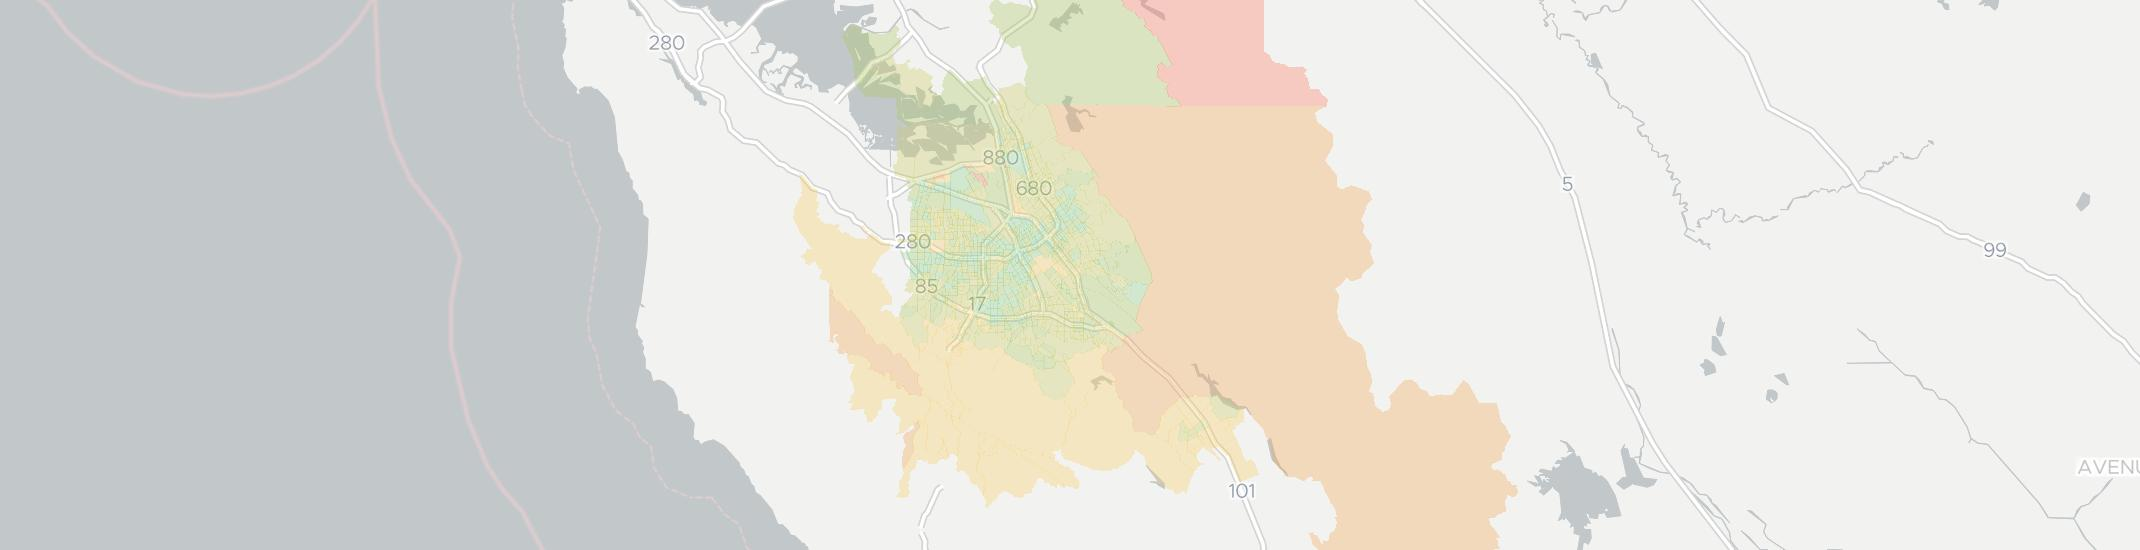 San Jose Internet Competition Map. Click for interactive map.